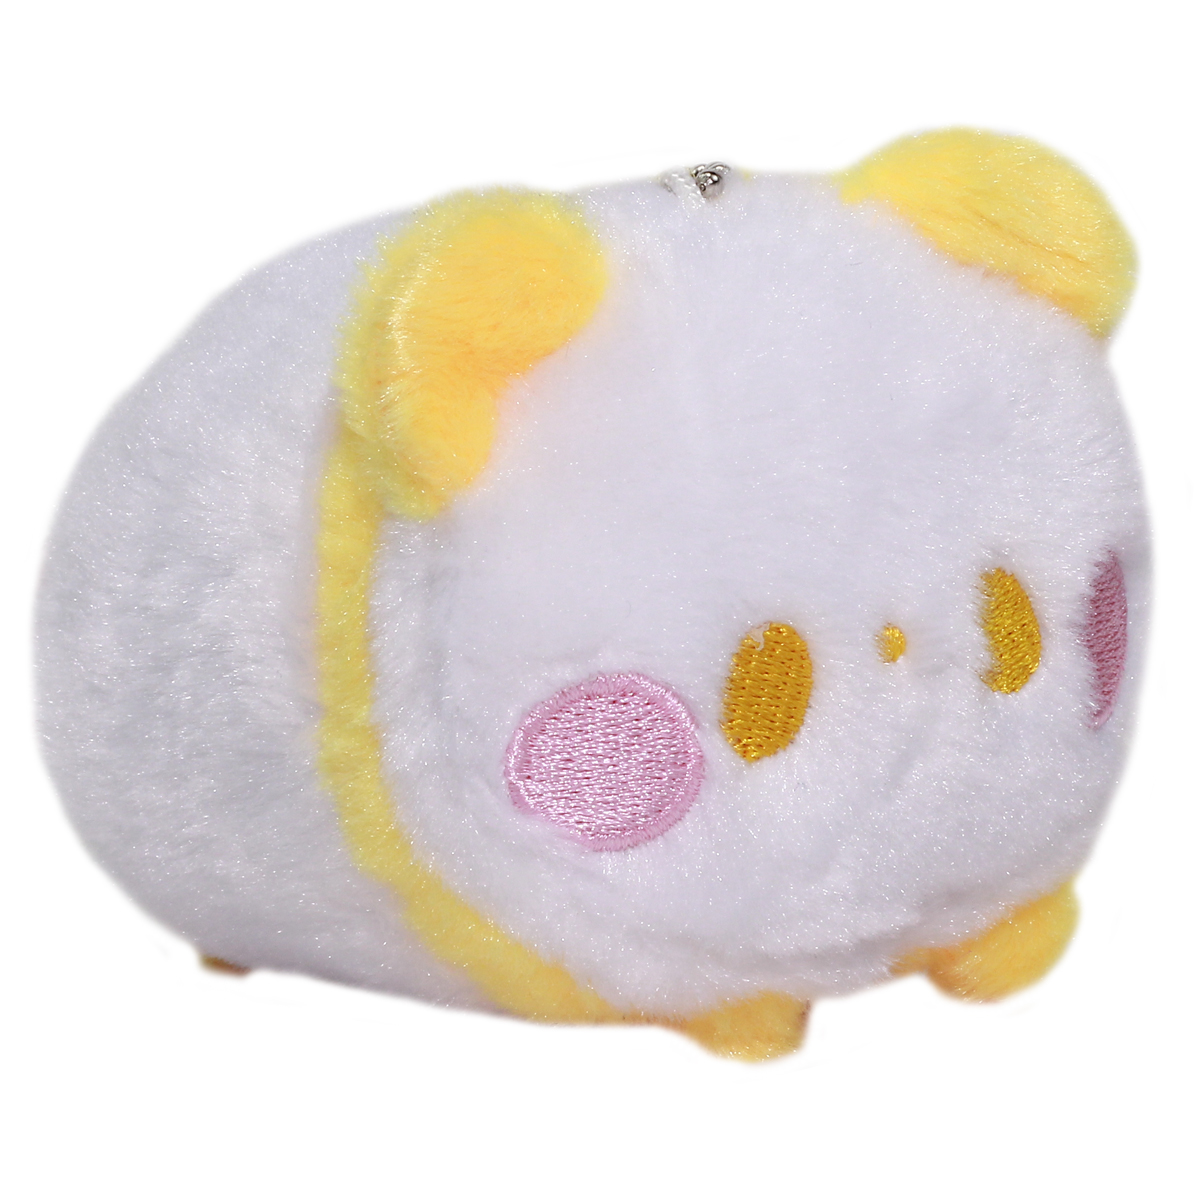 Super Soft Mochii Cute Panda Plush Keychain Yellow White 3.5